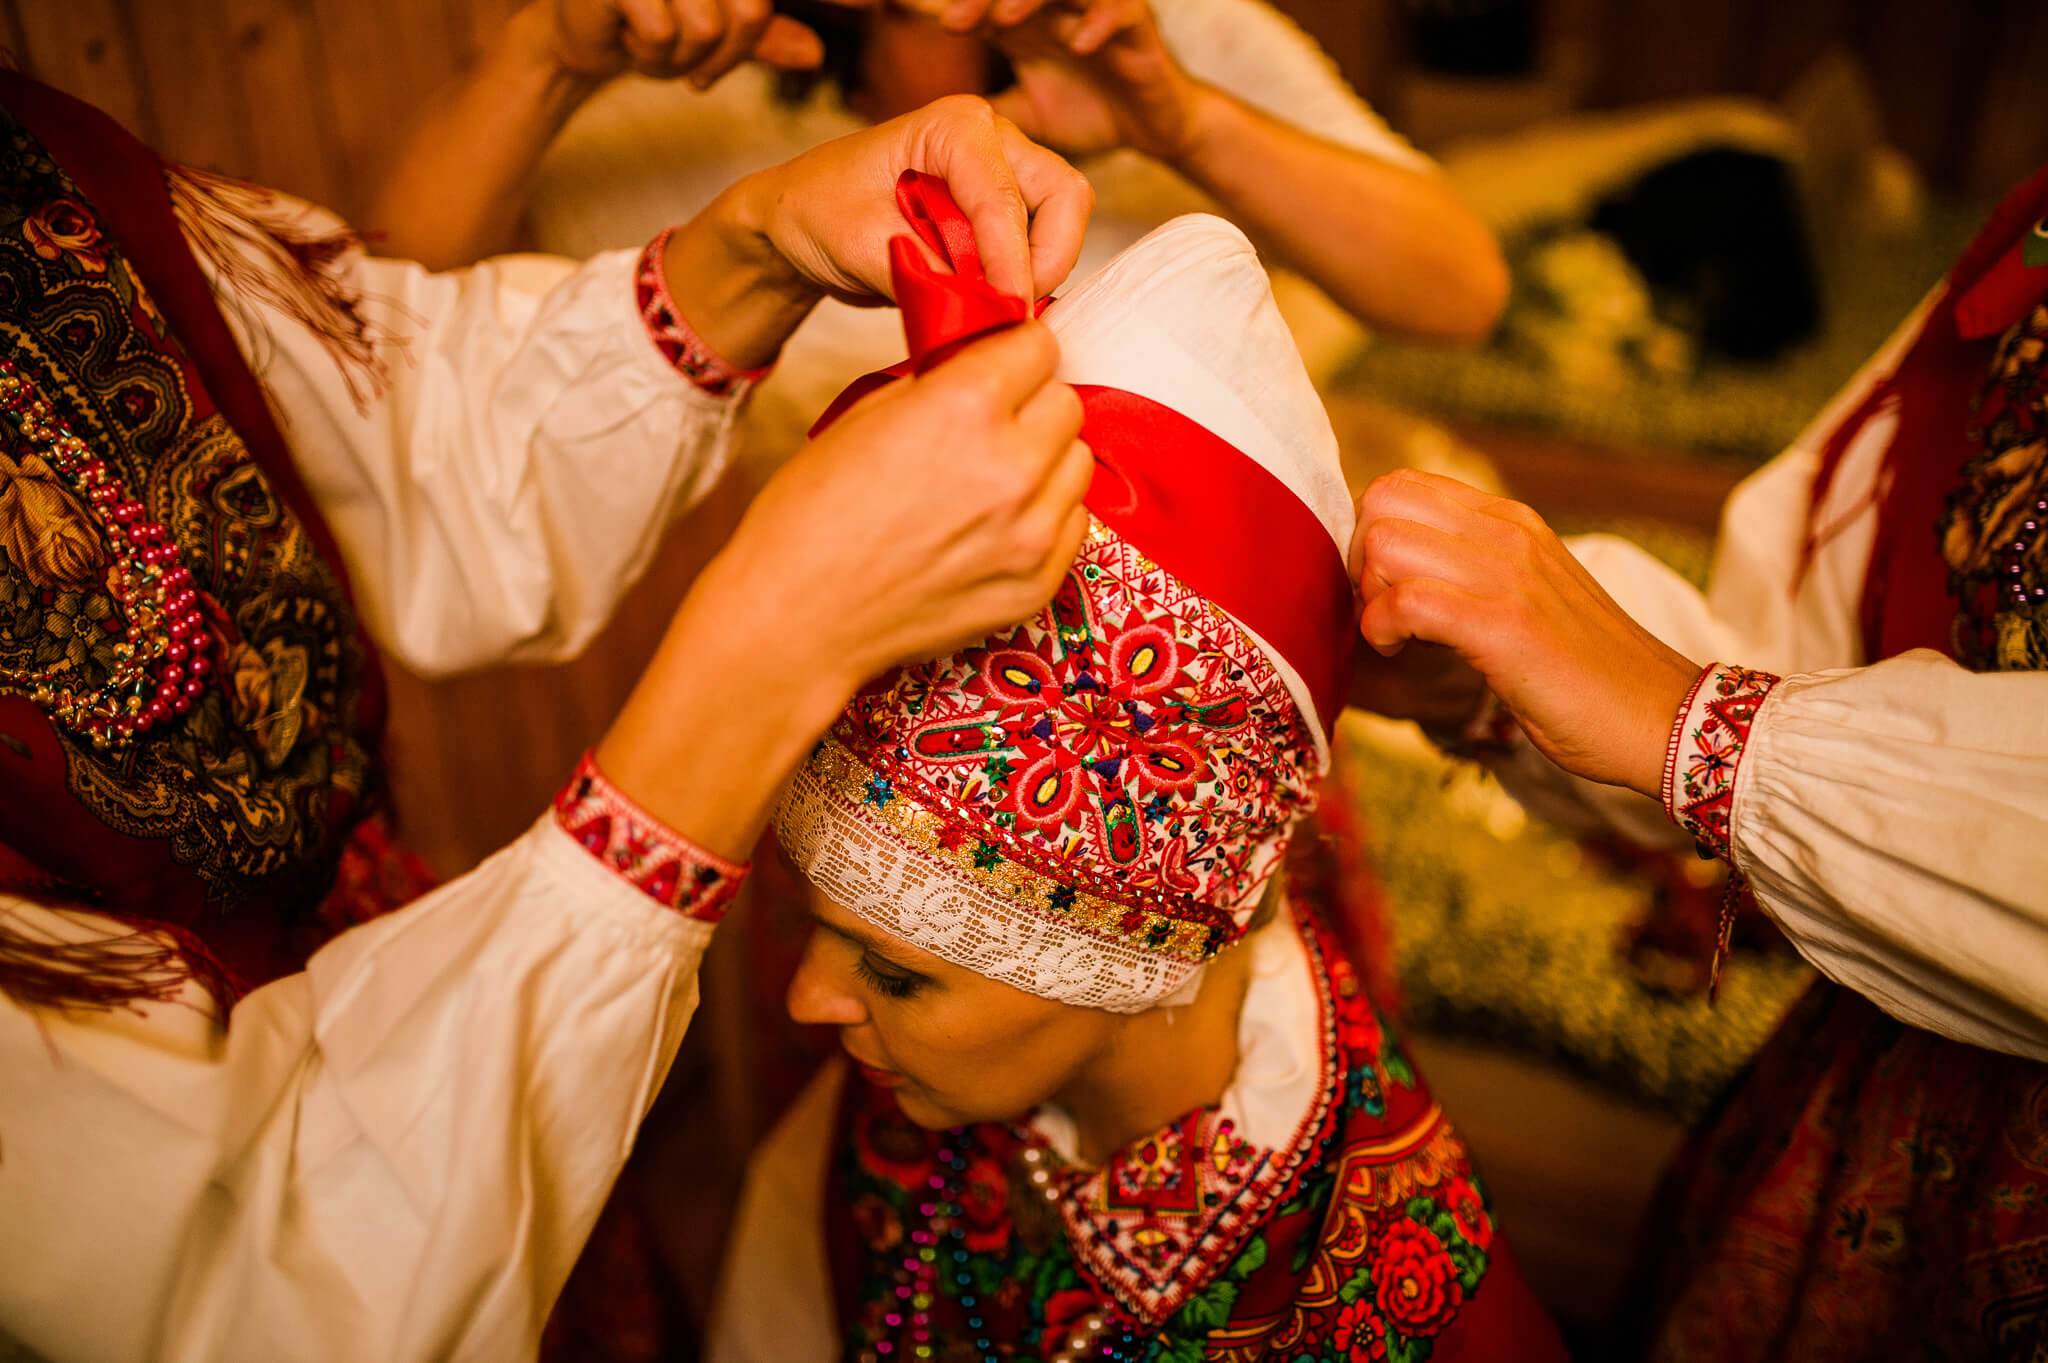 Traditional Kihnu bride is getting ready before her wedding day in Estonia